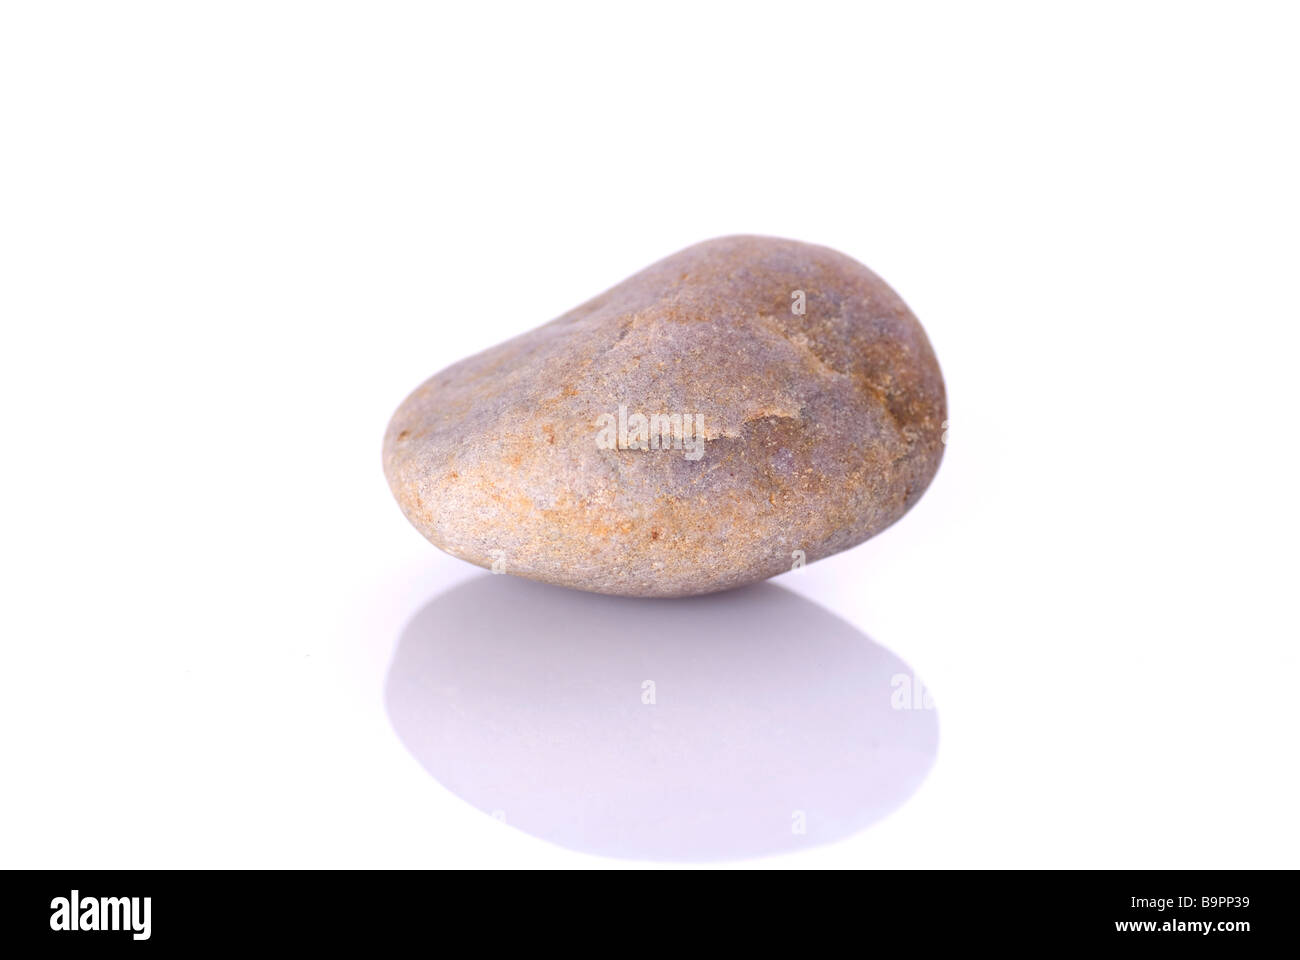 One pebble isolated against a white background - Stock Image